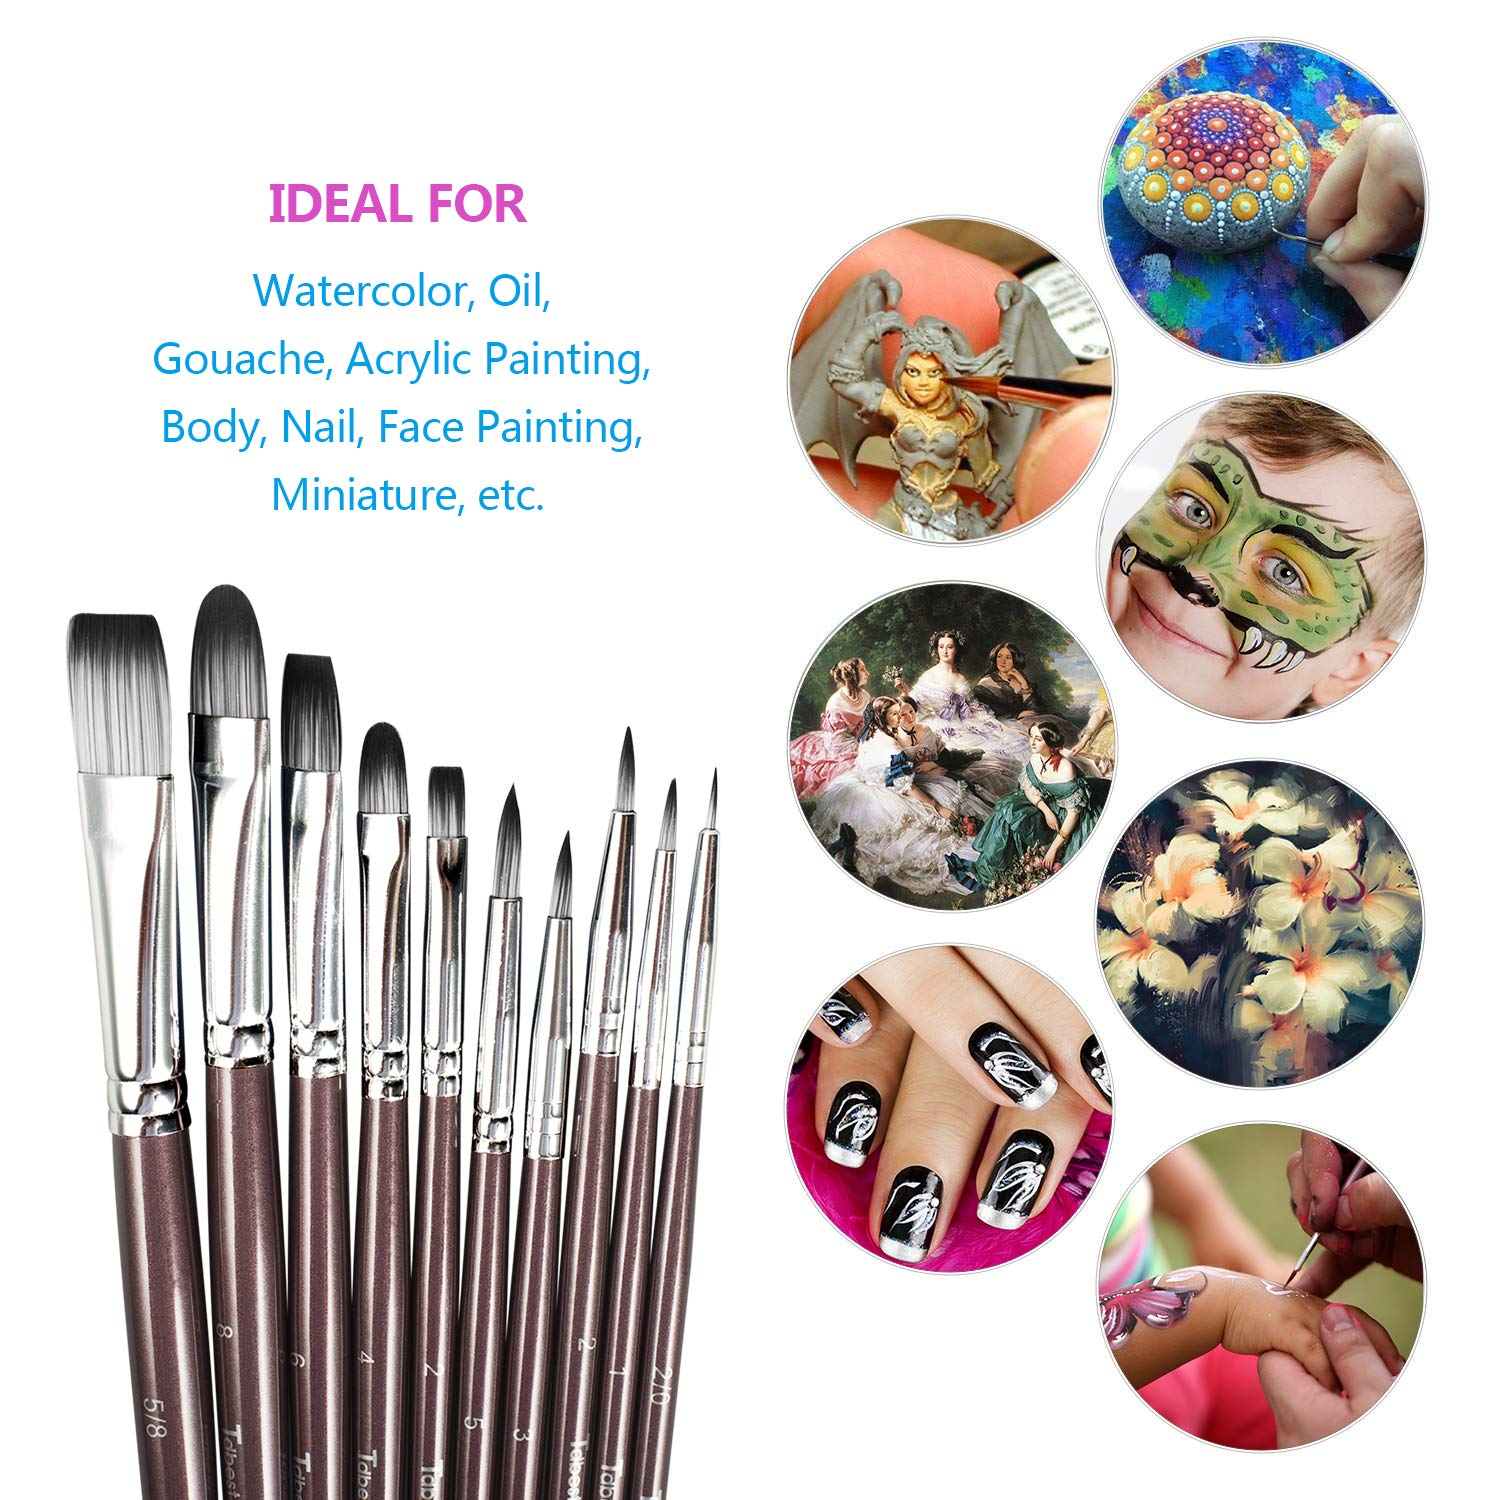 Tdbest Paint Brushes Handmade Nylon Hair Artist Paintbrush Set, Great for Acrylic, Oil, Gouache, Watercolor Painting, for Artists, Painters, Kids, Students and Beginner (10 Pieces)